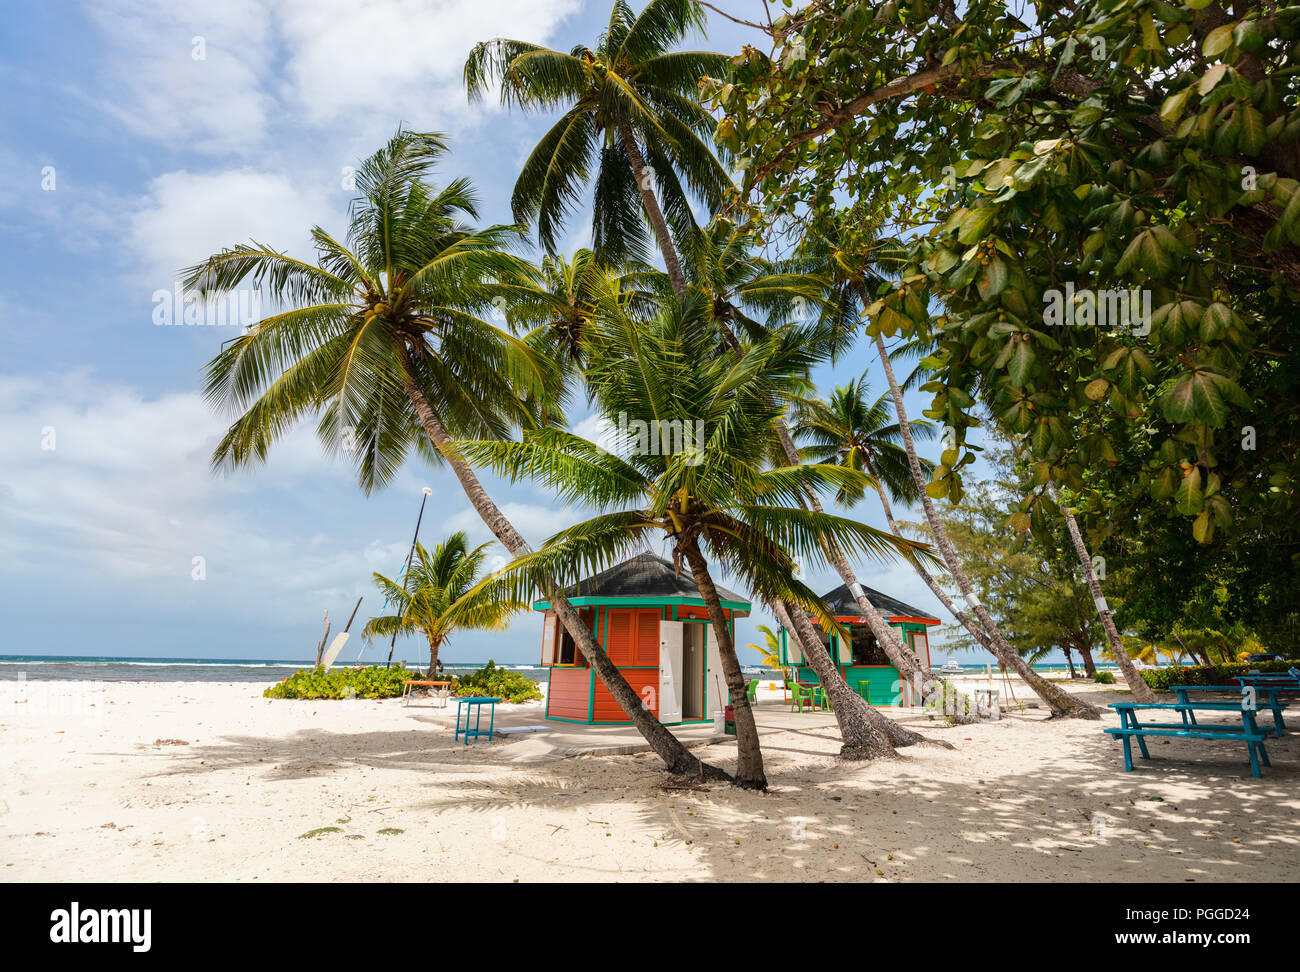 Idyllic tropical beach with white sand, palm trees and turquoise ocean water on Barbados island in Caribbean Stock Photo